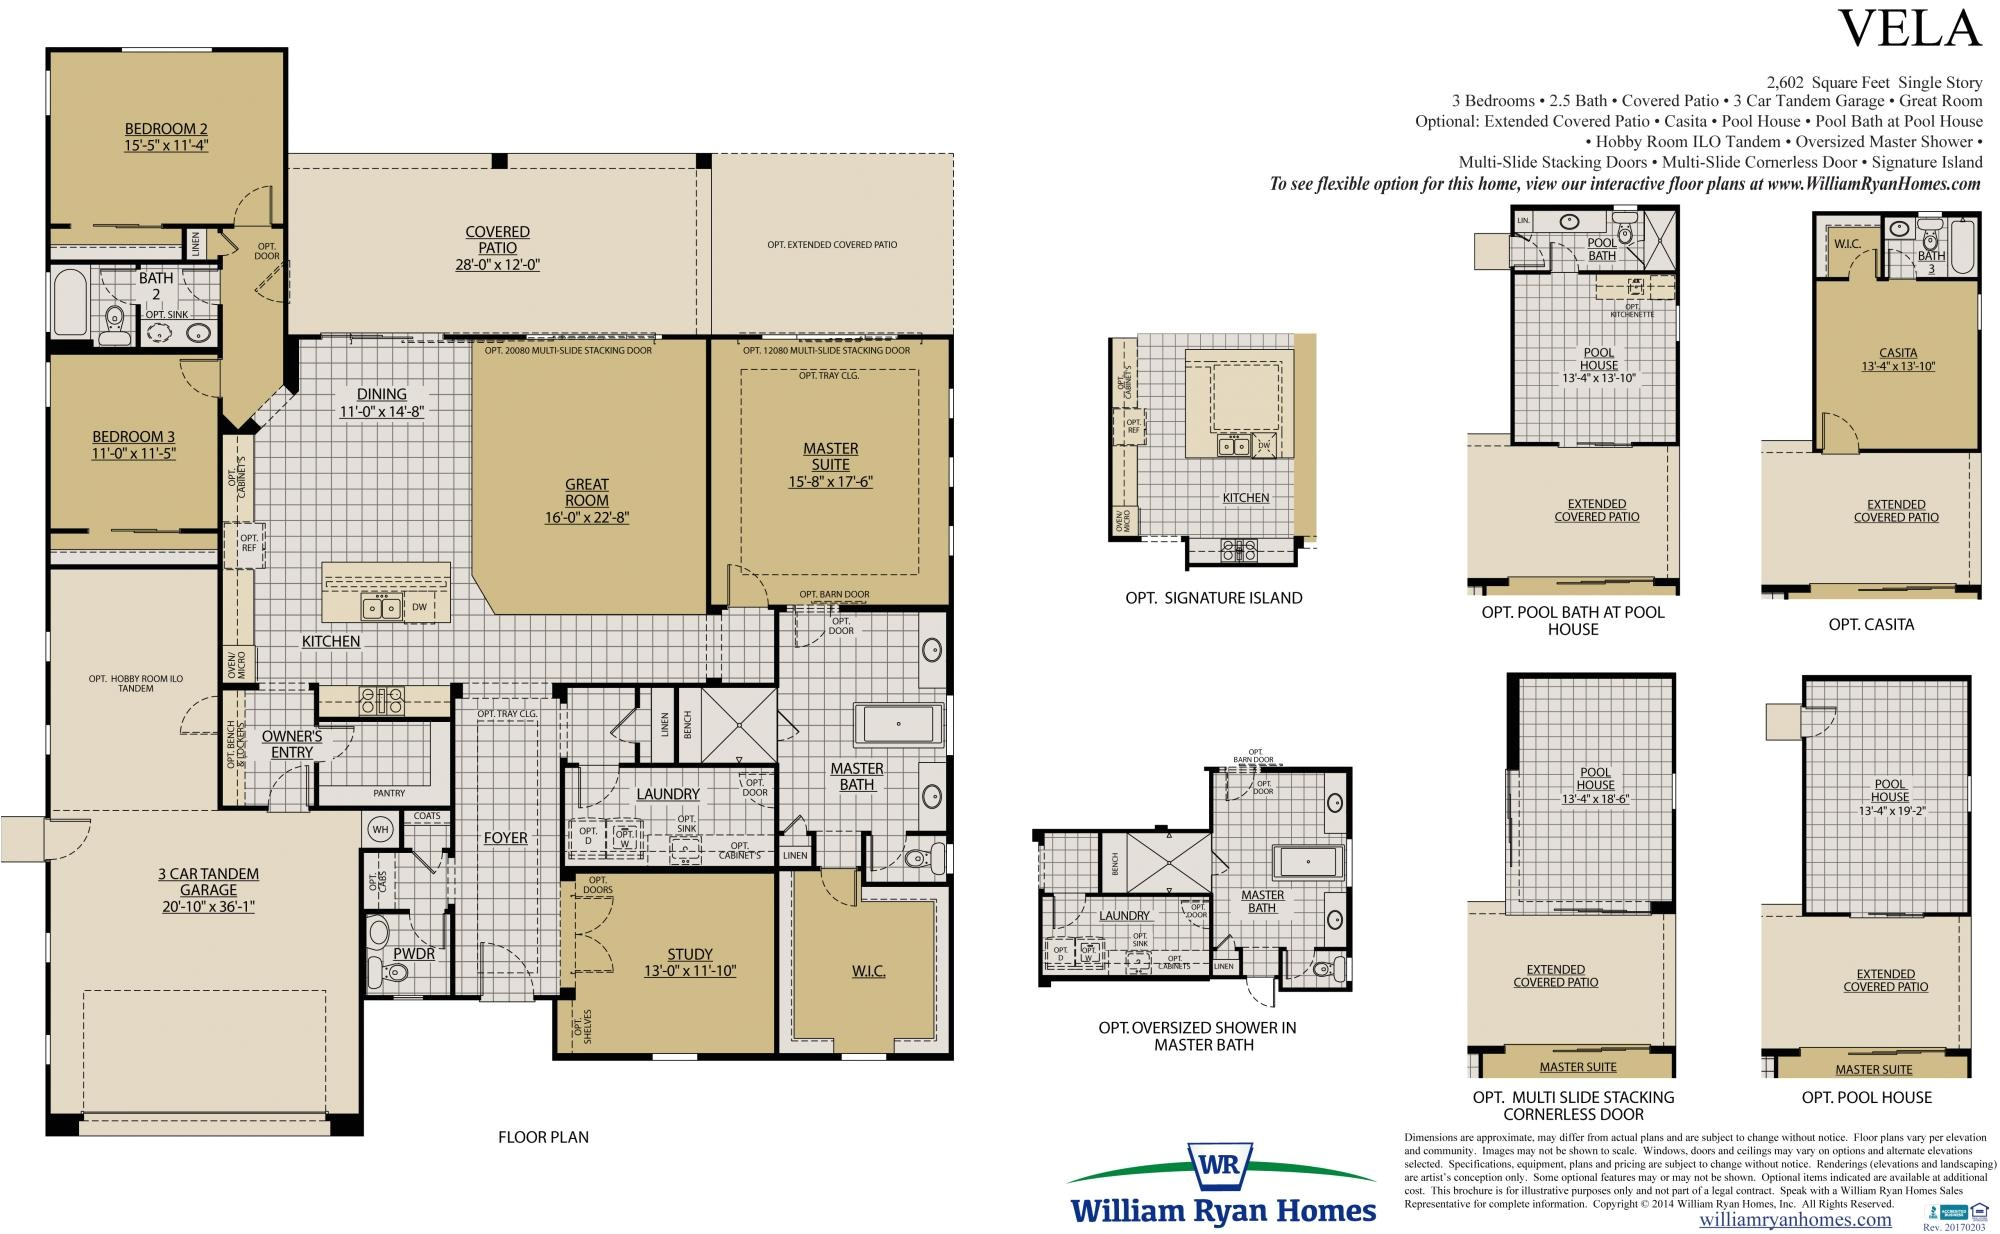 William Ryan Homes Floor Plans William Ryan Homes Vela